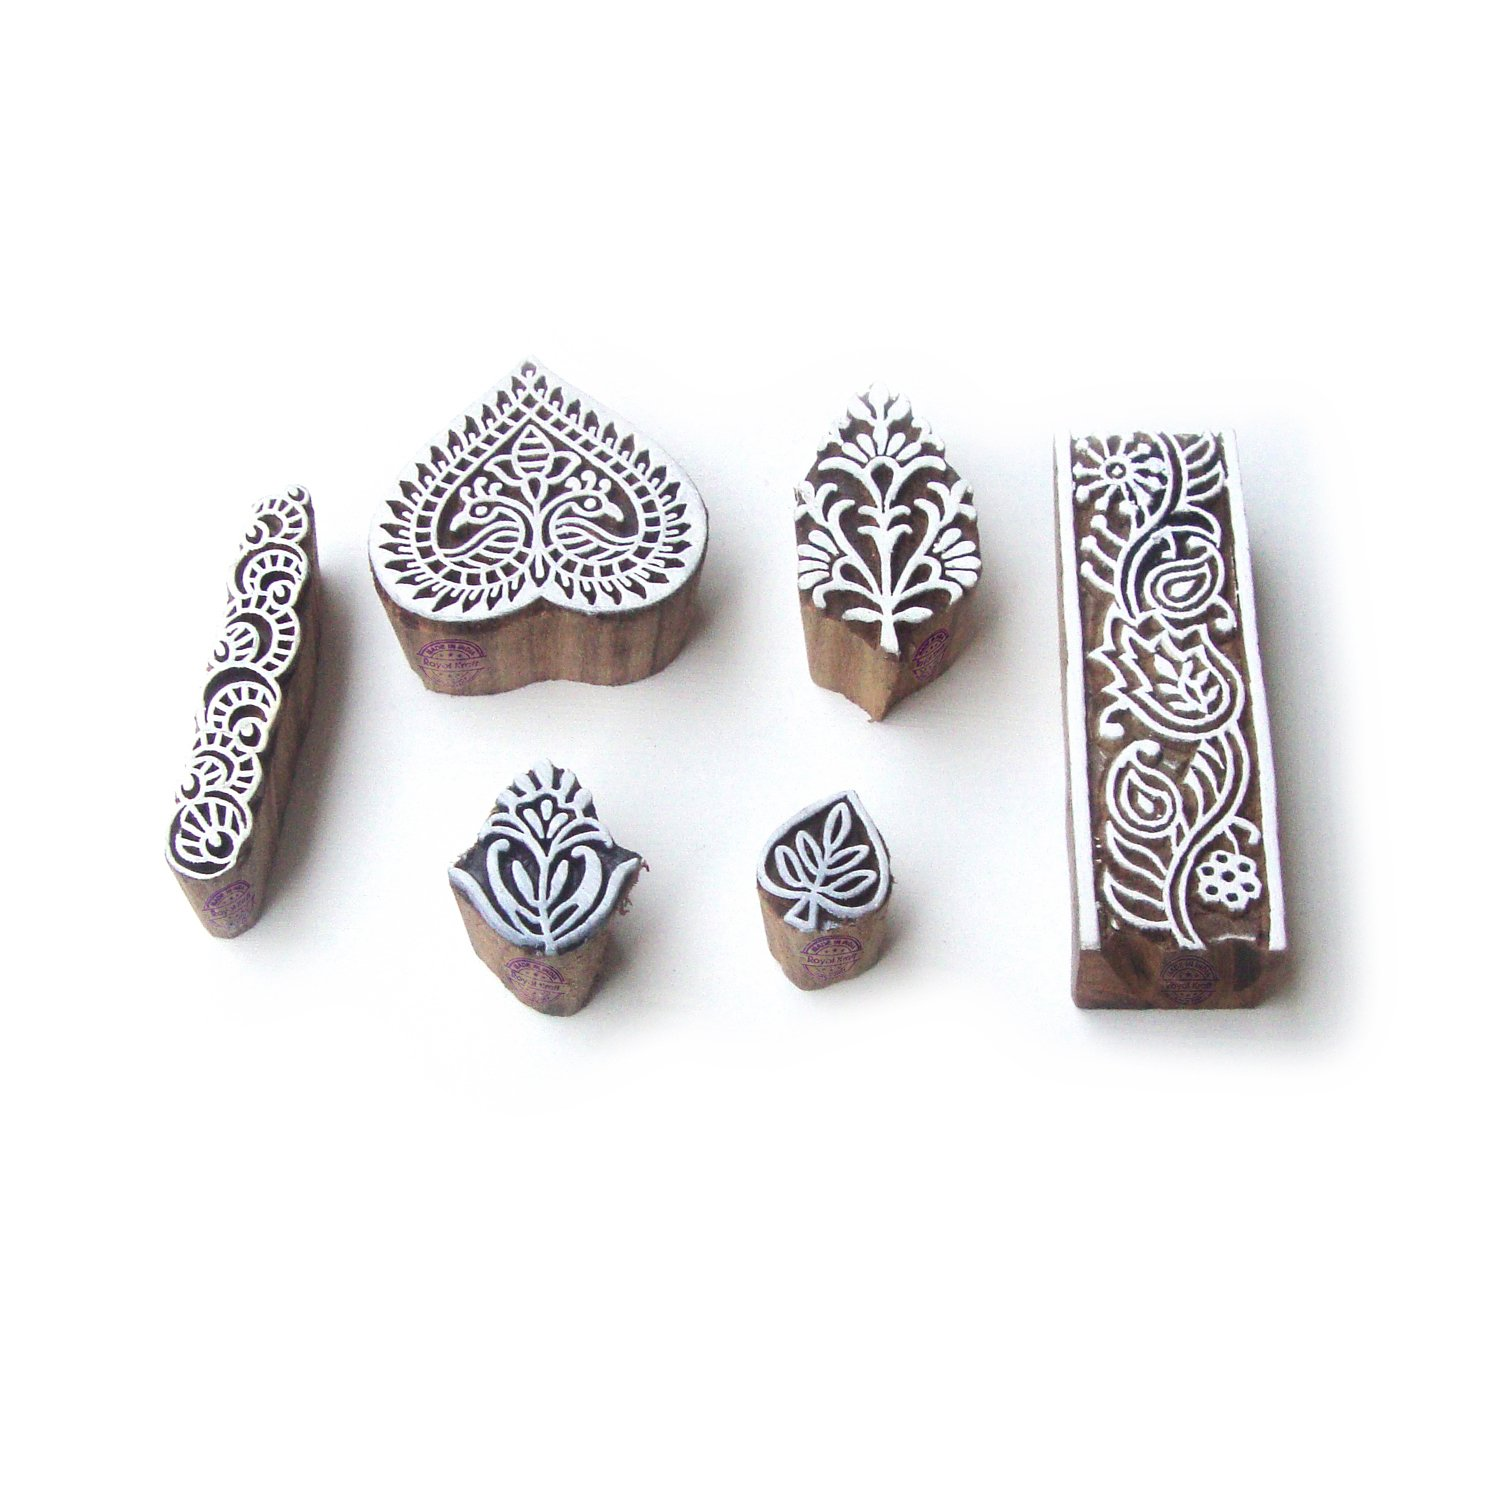 Hand Crafted Heart and Leaf Motif Block Print Wood Stamps (Set of 6)